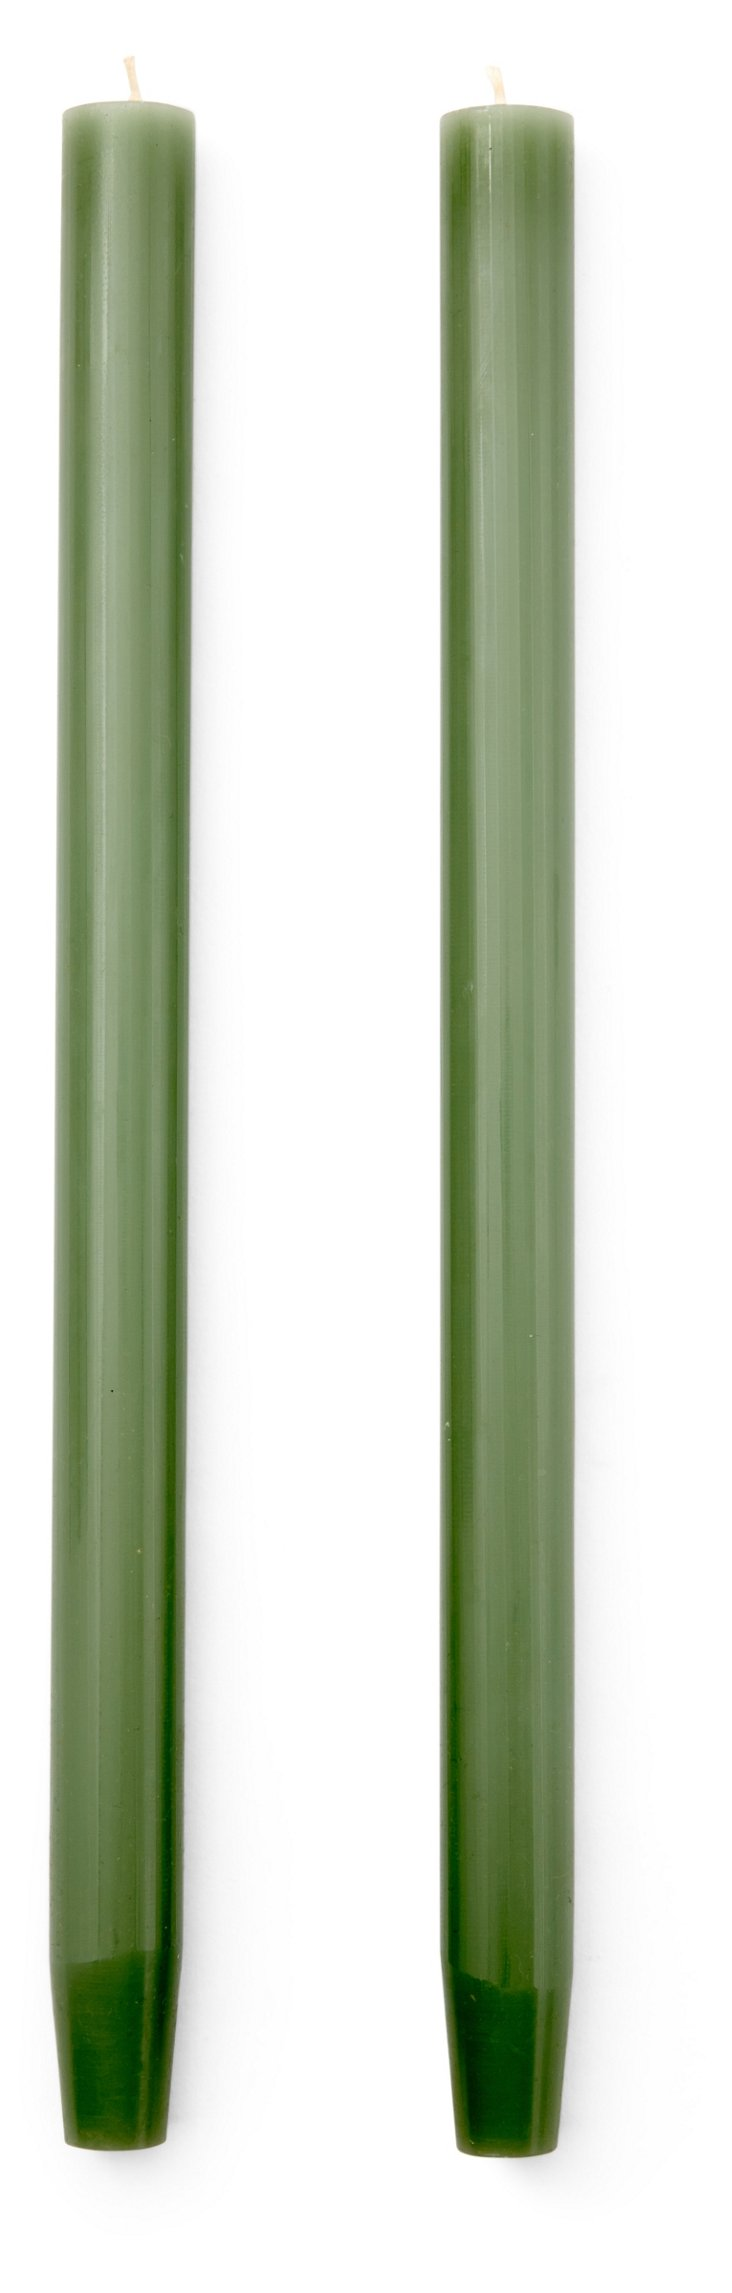 S/4 Taper Candles, Fern